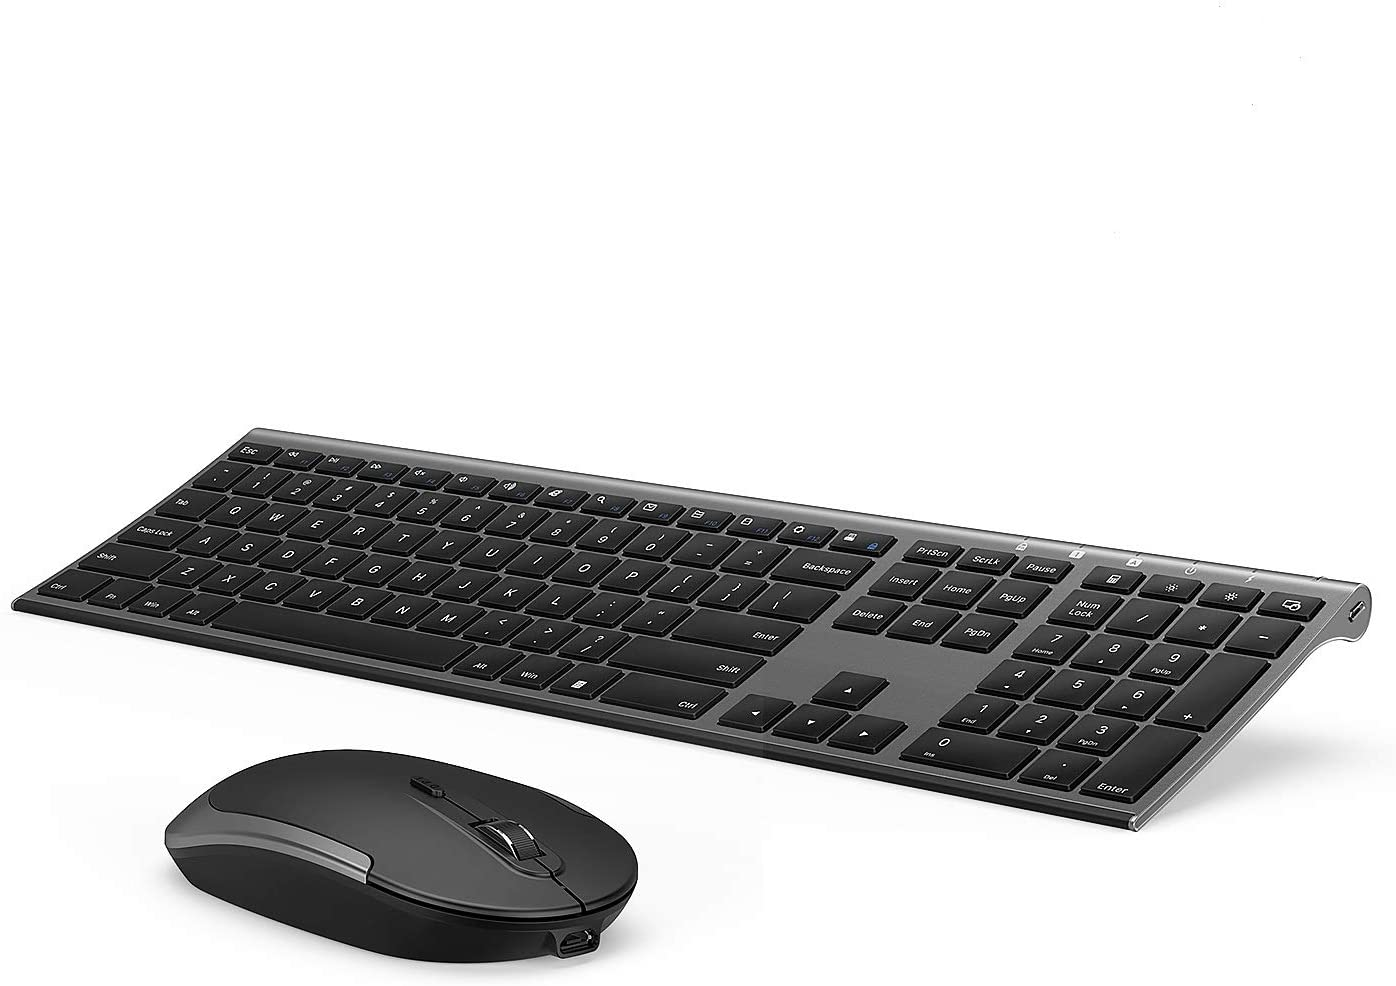 Whisper-Quiet,with Ergonomic Wrist Rest,Compatible with Windows and Chrome OS for Working and Gaming Wireless Keyboard and Mouse Combo Set Color : Black